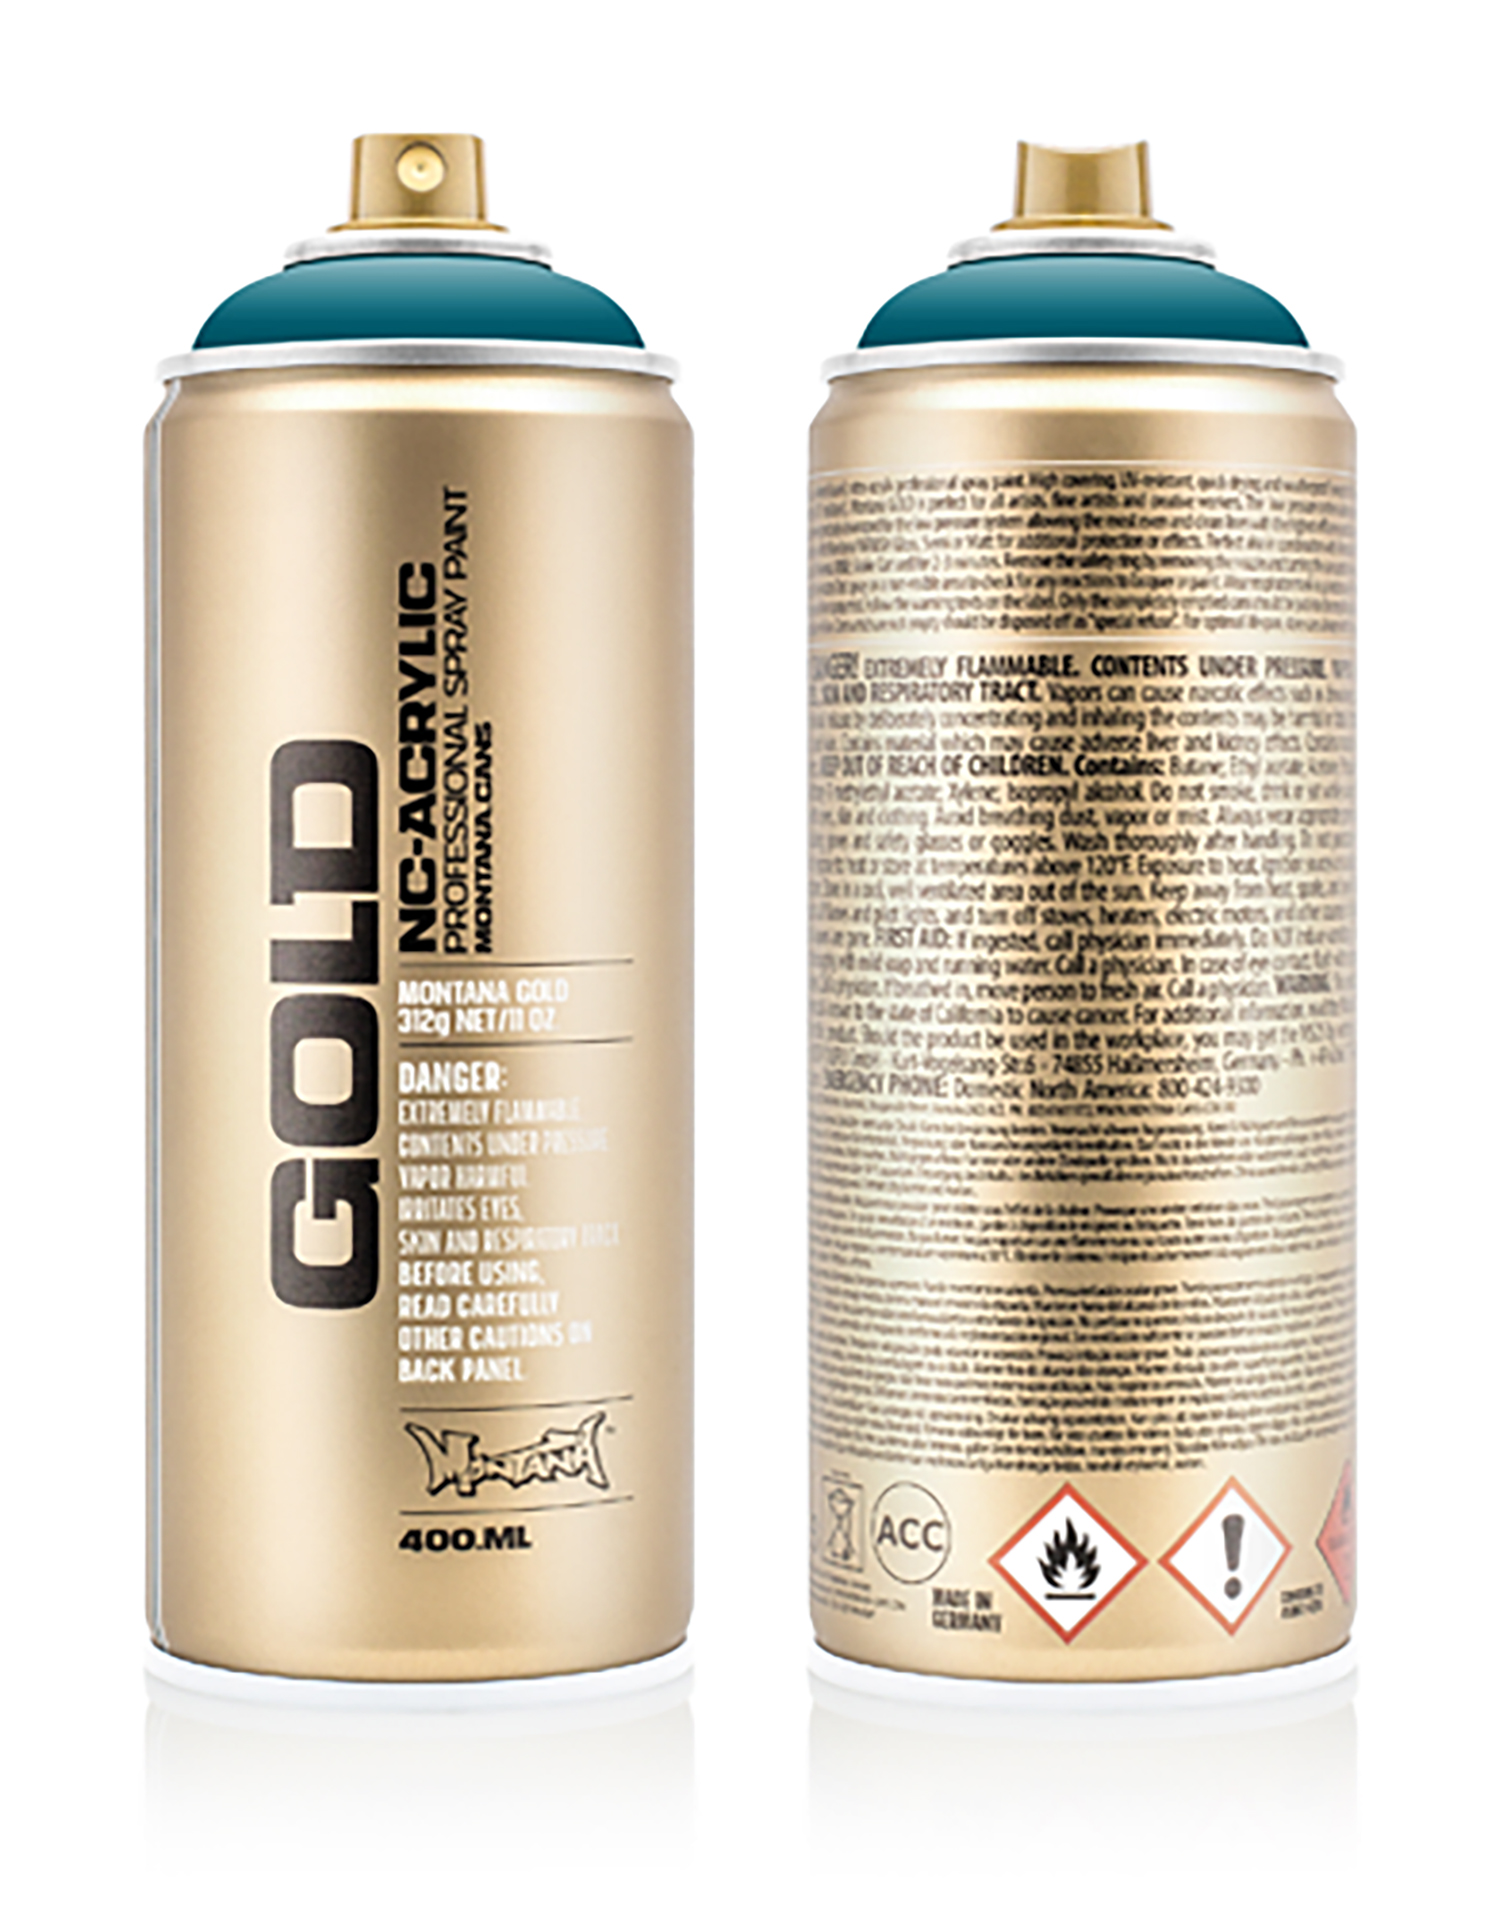 MONTANA-GOLD-SPRAY-400ML-G-6270